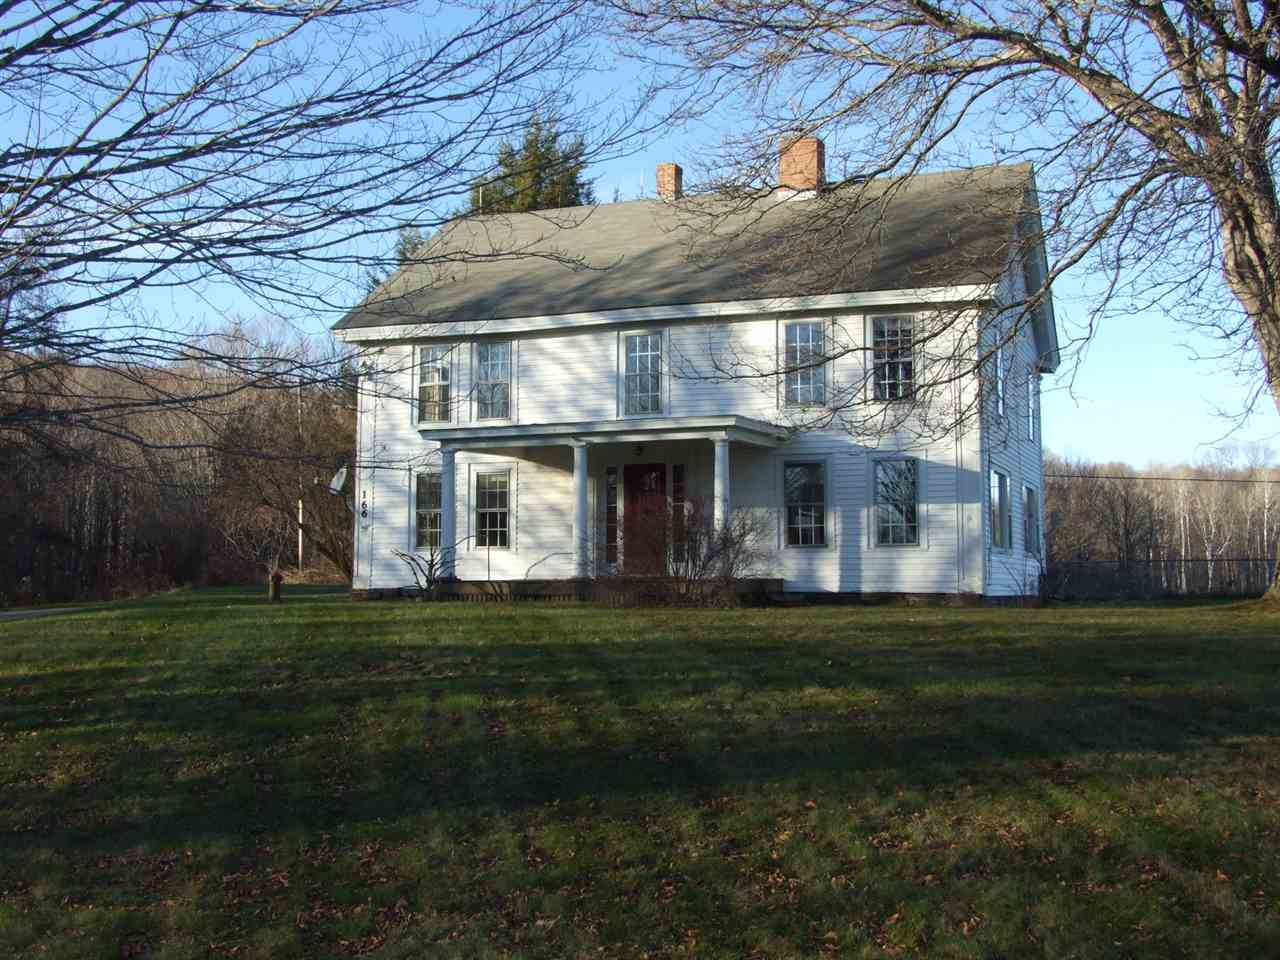 "Lovely old Colonial home with presence on 98 spectacular acres in the heart of West Windsor with pond & views. This home is waiting to be renovated to your liking. The main floor includes a center entry foyer, large living and dining rooms, kitchen and a knotty pine mudroom which exits to a brick patio. Second floor has 2 large bedrooms and 2 smaller bedrooms, bath and laundry. Furnace & hot water heater new in 2008. A detached garage & barn for your Horses or other animals, room for Carriages as well as vehicle and equipment storage. This beautiful property includes hayfields, woods and a network of trails for non motorized recreation which has been carefully maintained and enjoyed as well as, a snow mobile trail.  *A conservation easement is in place with the Upper Valley Land Trust to insure that this treasure is protected for future generations. Property is being sold in ""as is"" condition."